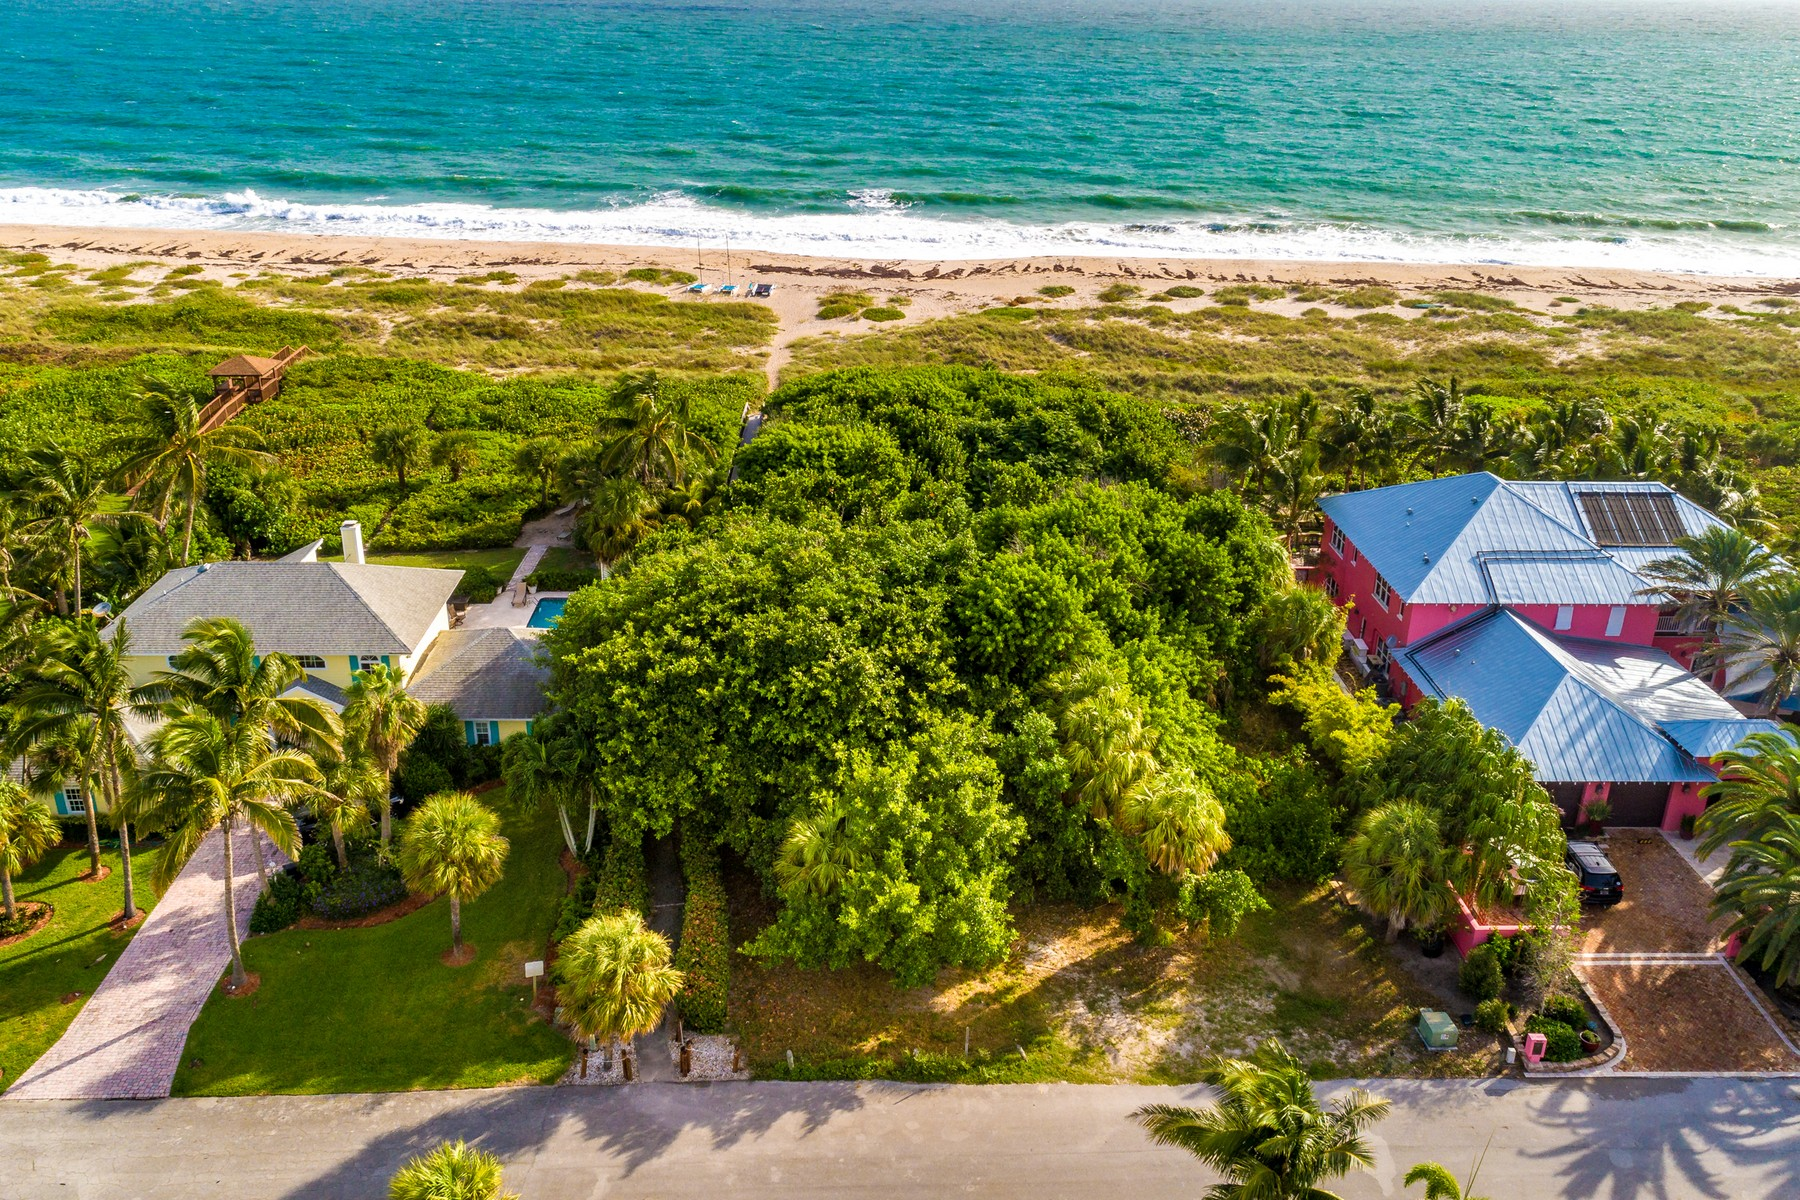 Terreno por un Venta en Magnificent Oceanfront Homesite 920 Crescent Beach Road Vero Beach, Florida 32963 Estados Unidos